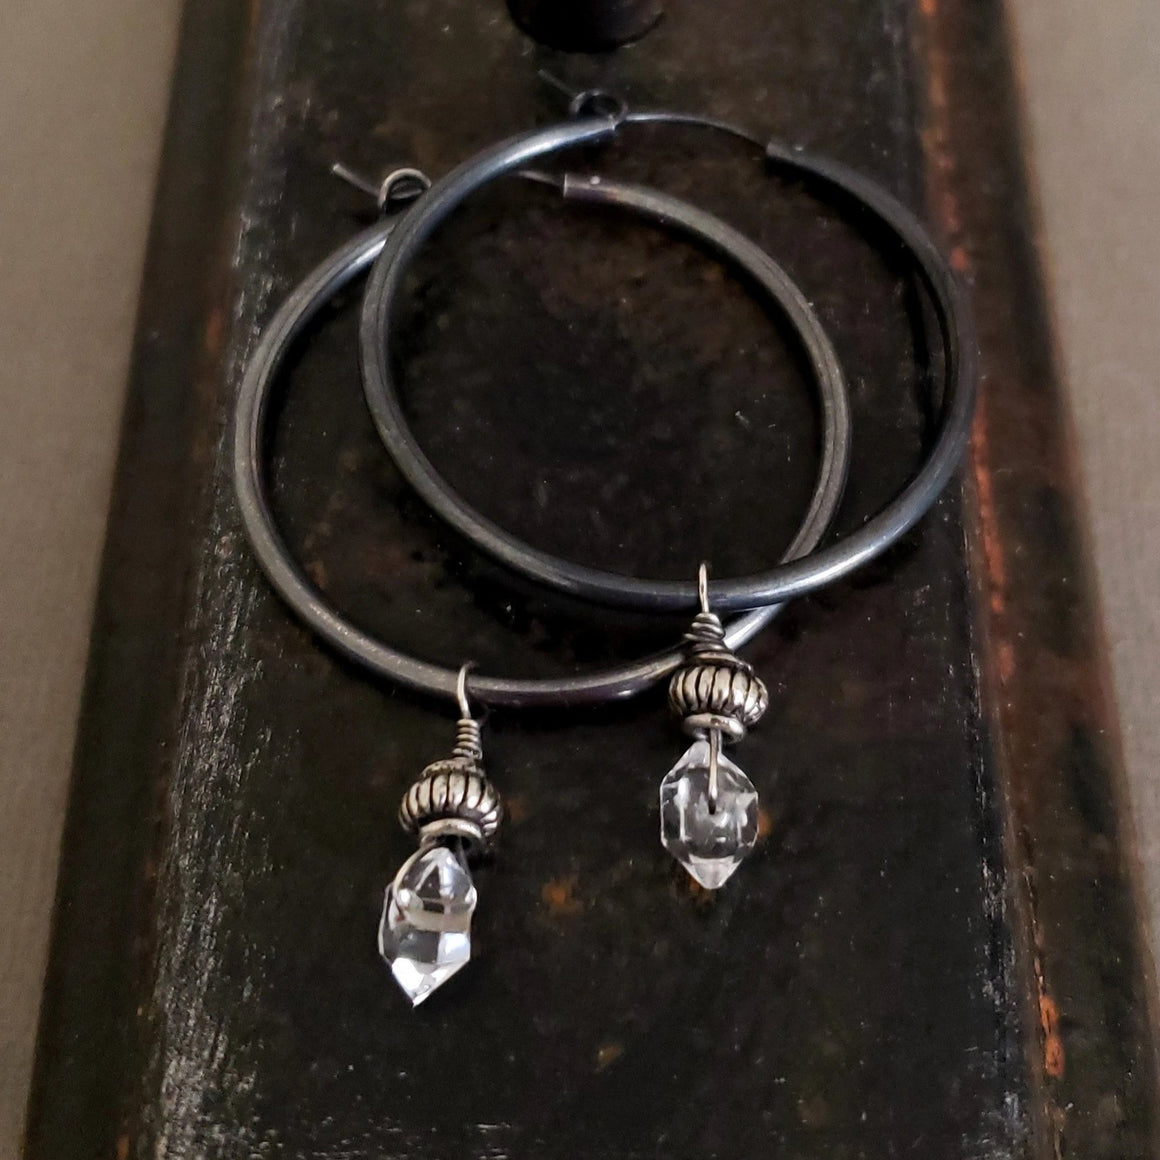 STERLING SILVER Black Hoop Herkimer Diamond Earrings, Black Hoops, Dangle Stone Hoop, Sterling Silver Hoop - ViaLove Designs